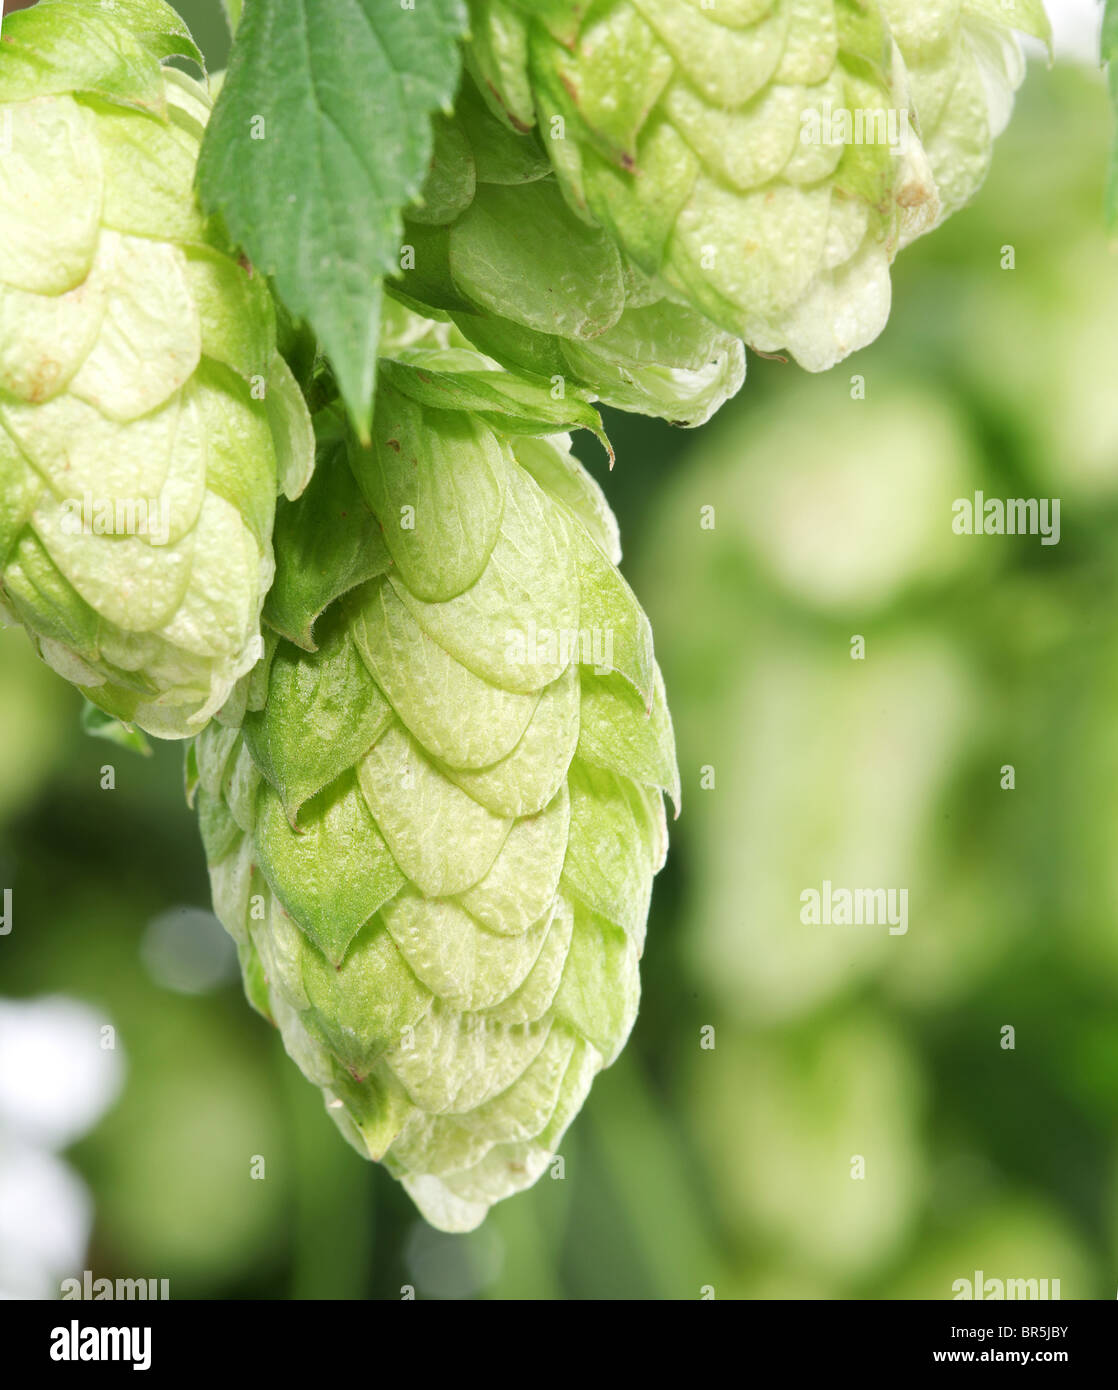 branch of hops close up - Stock Image